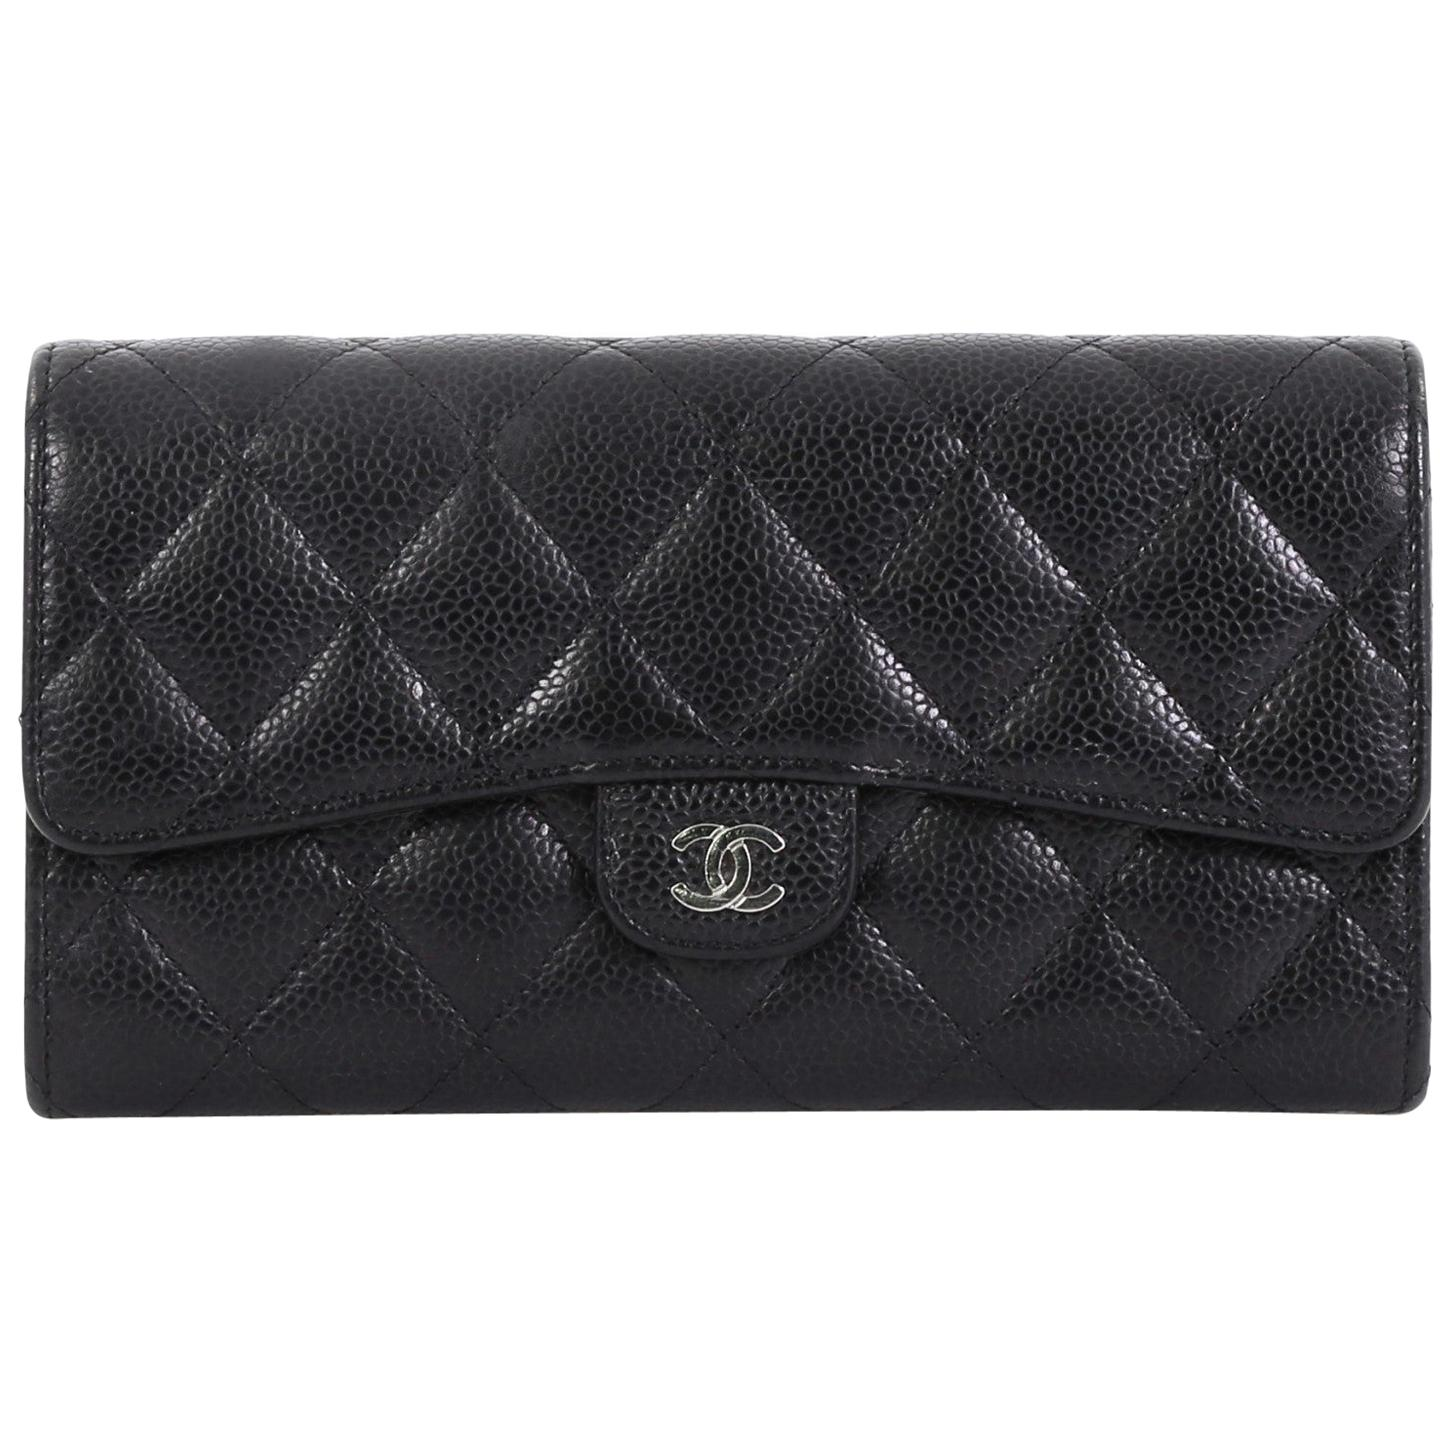 935071cff09714 Chanel Classic Wallets - 28 For Sale on 1stdibs